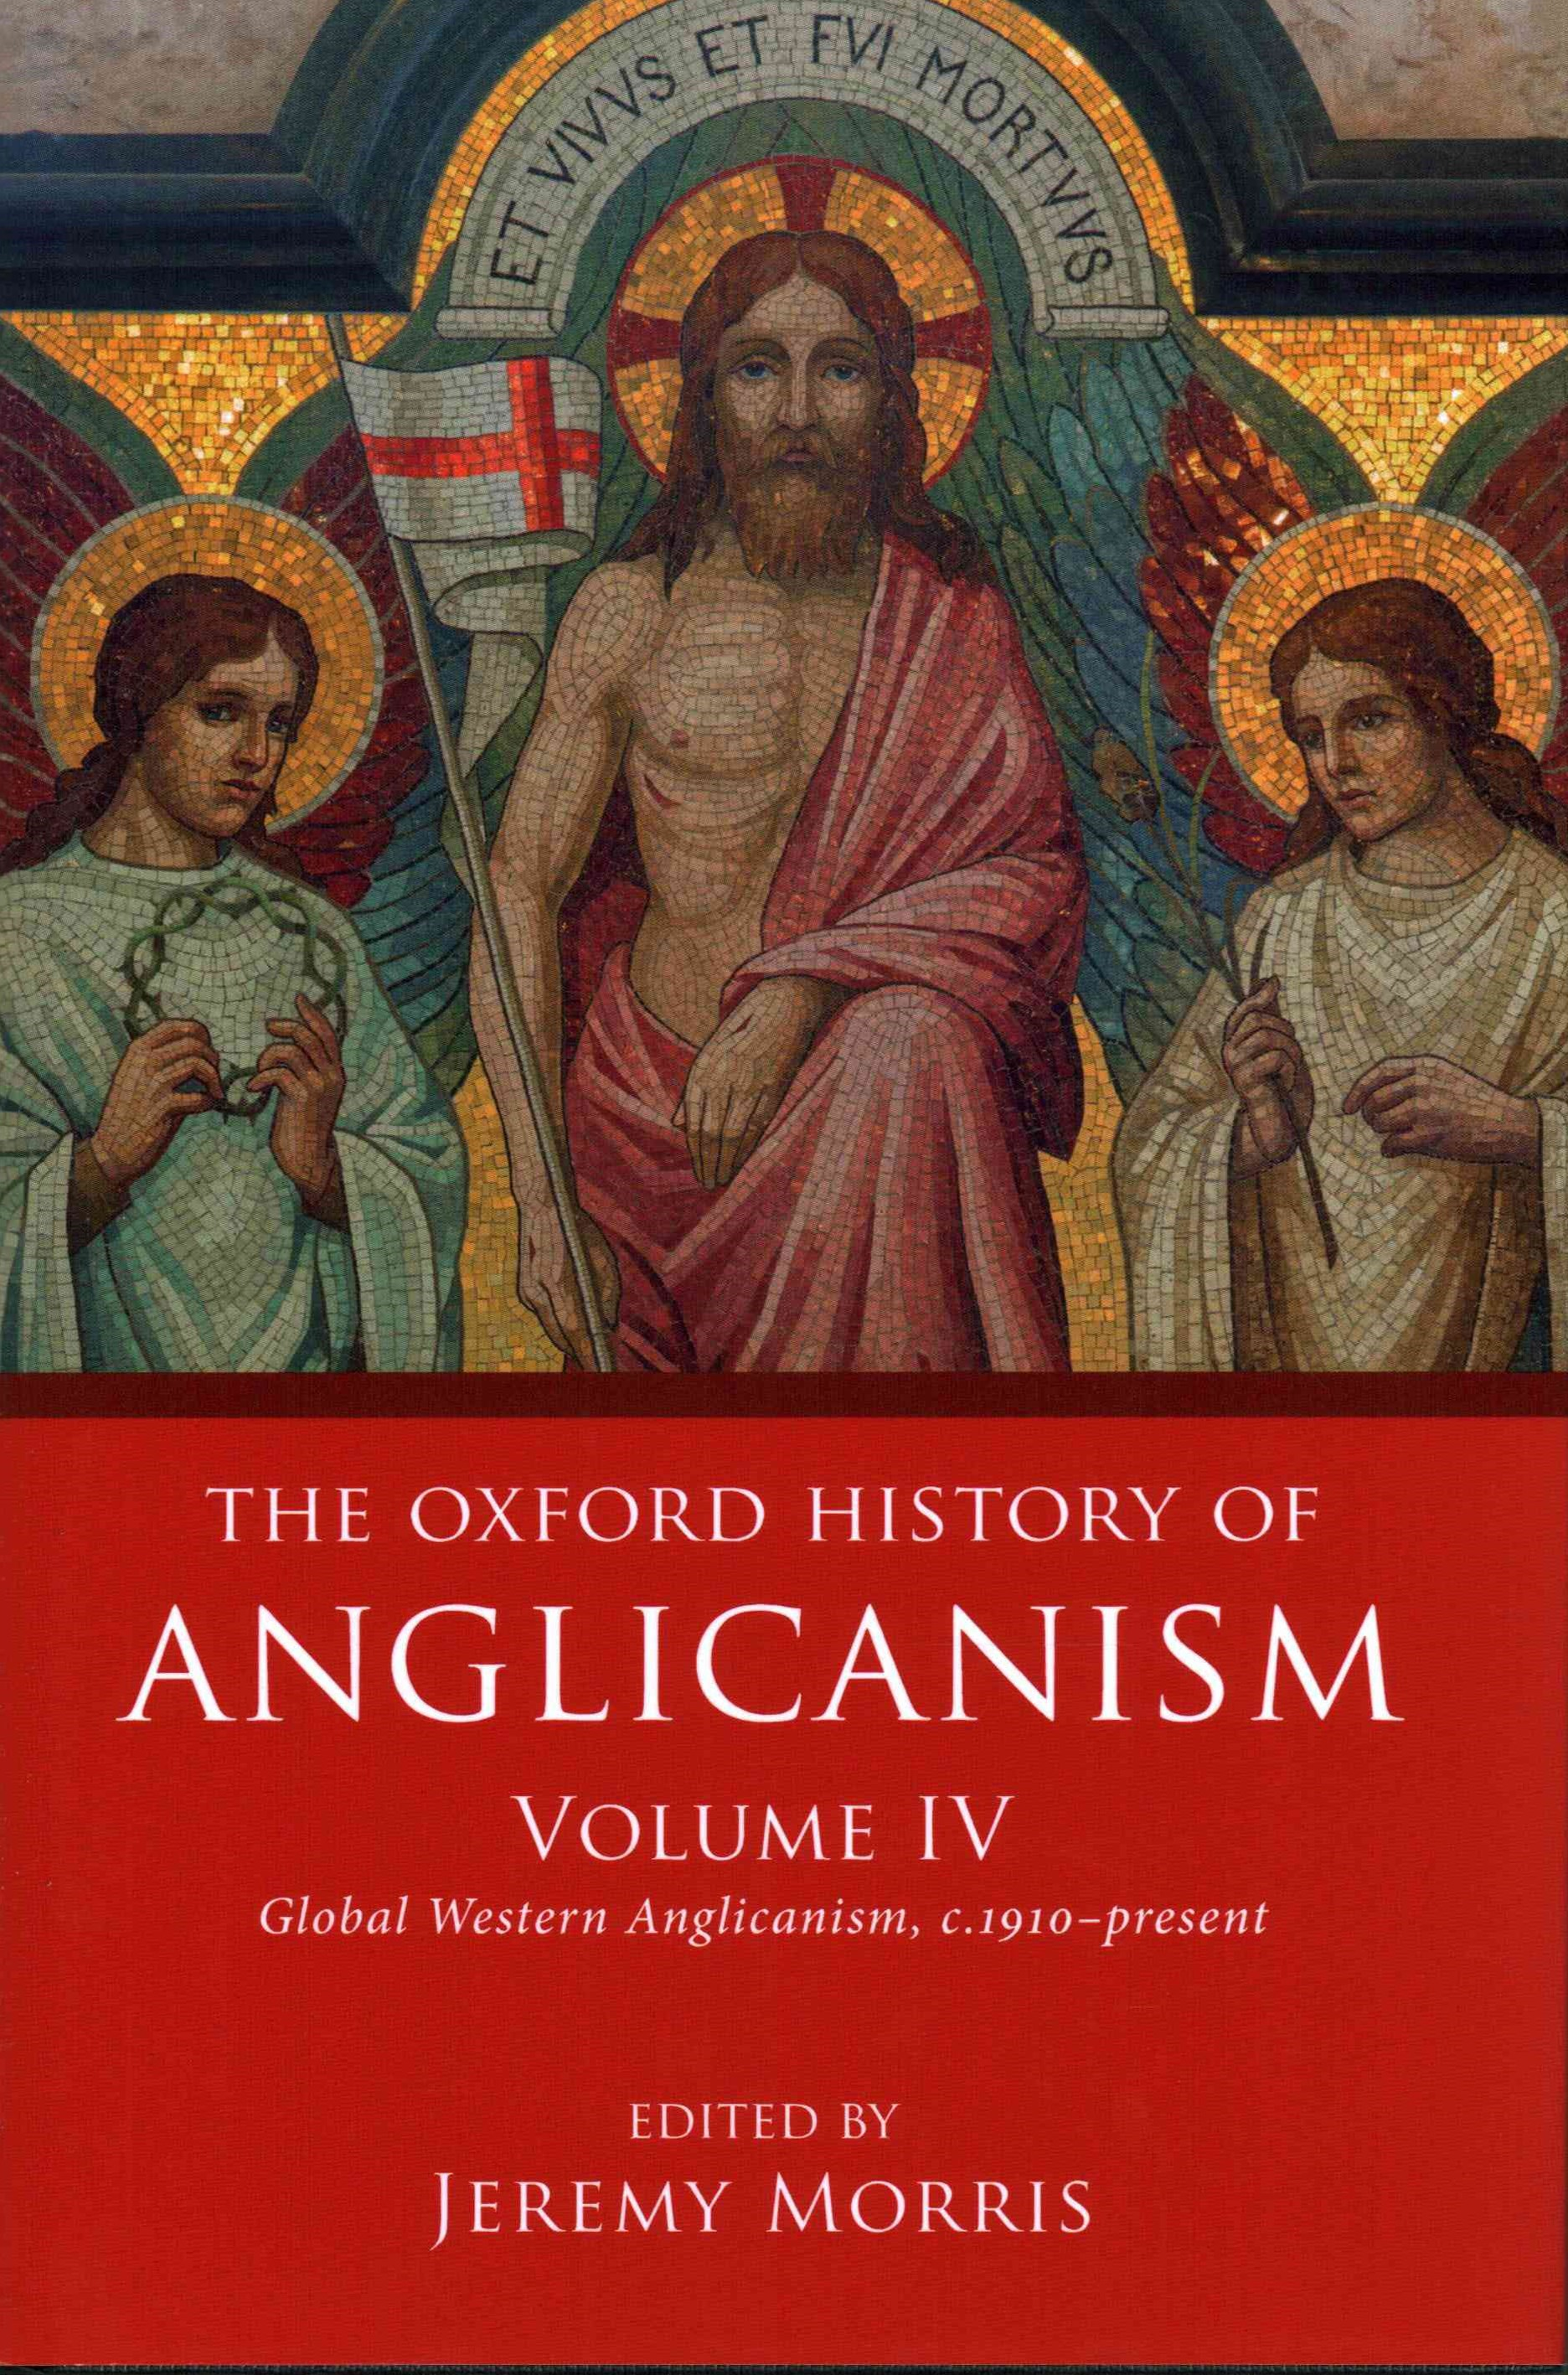 The Oxford History of Anglicanism, Volume IV